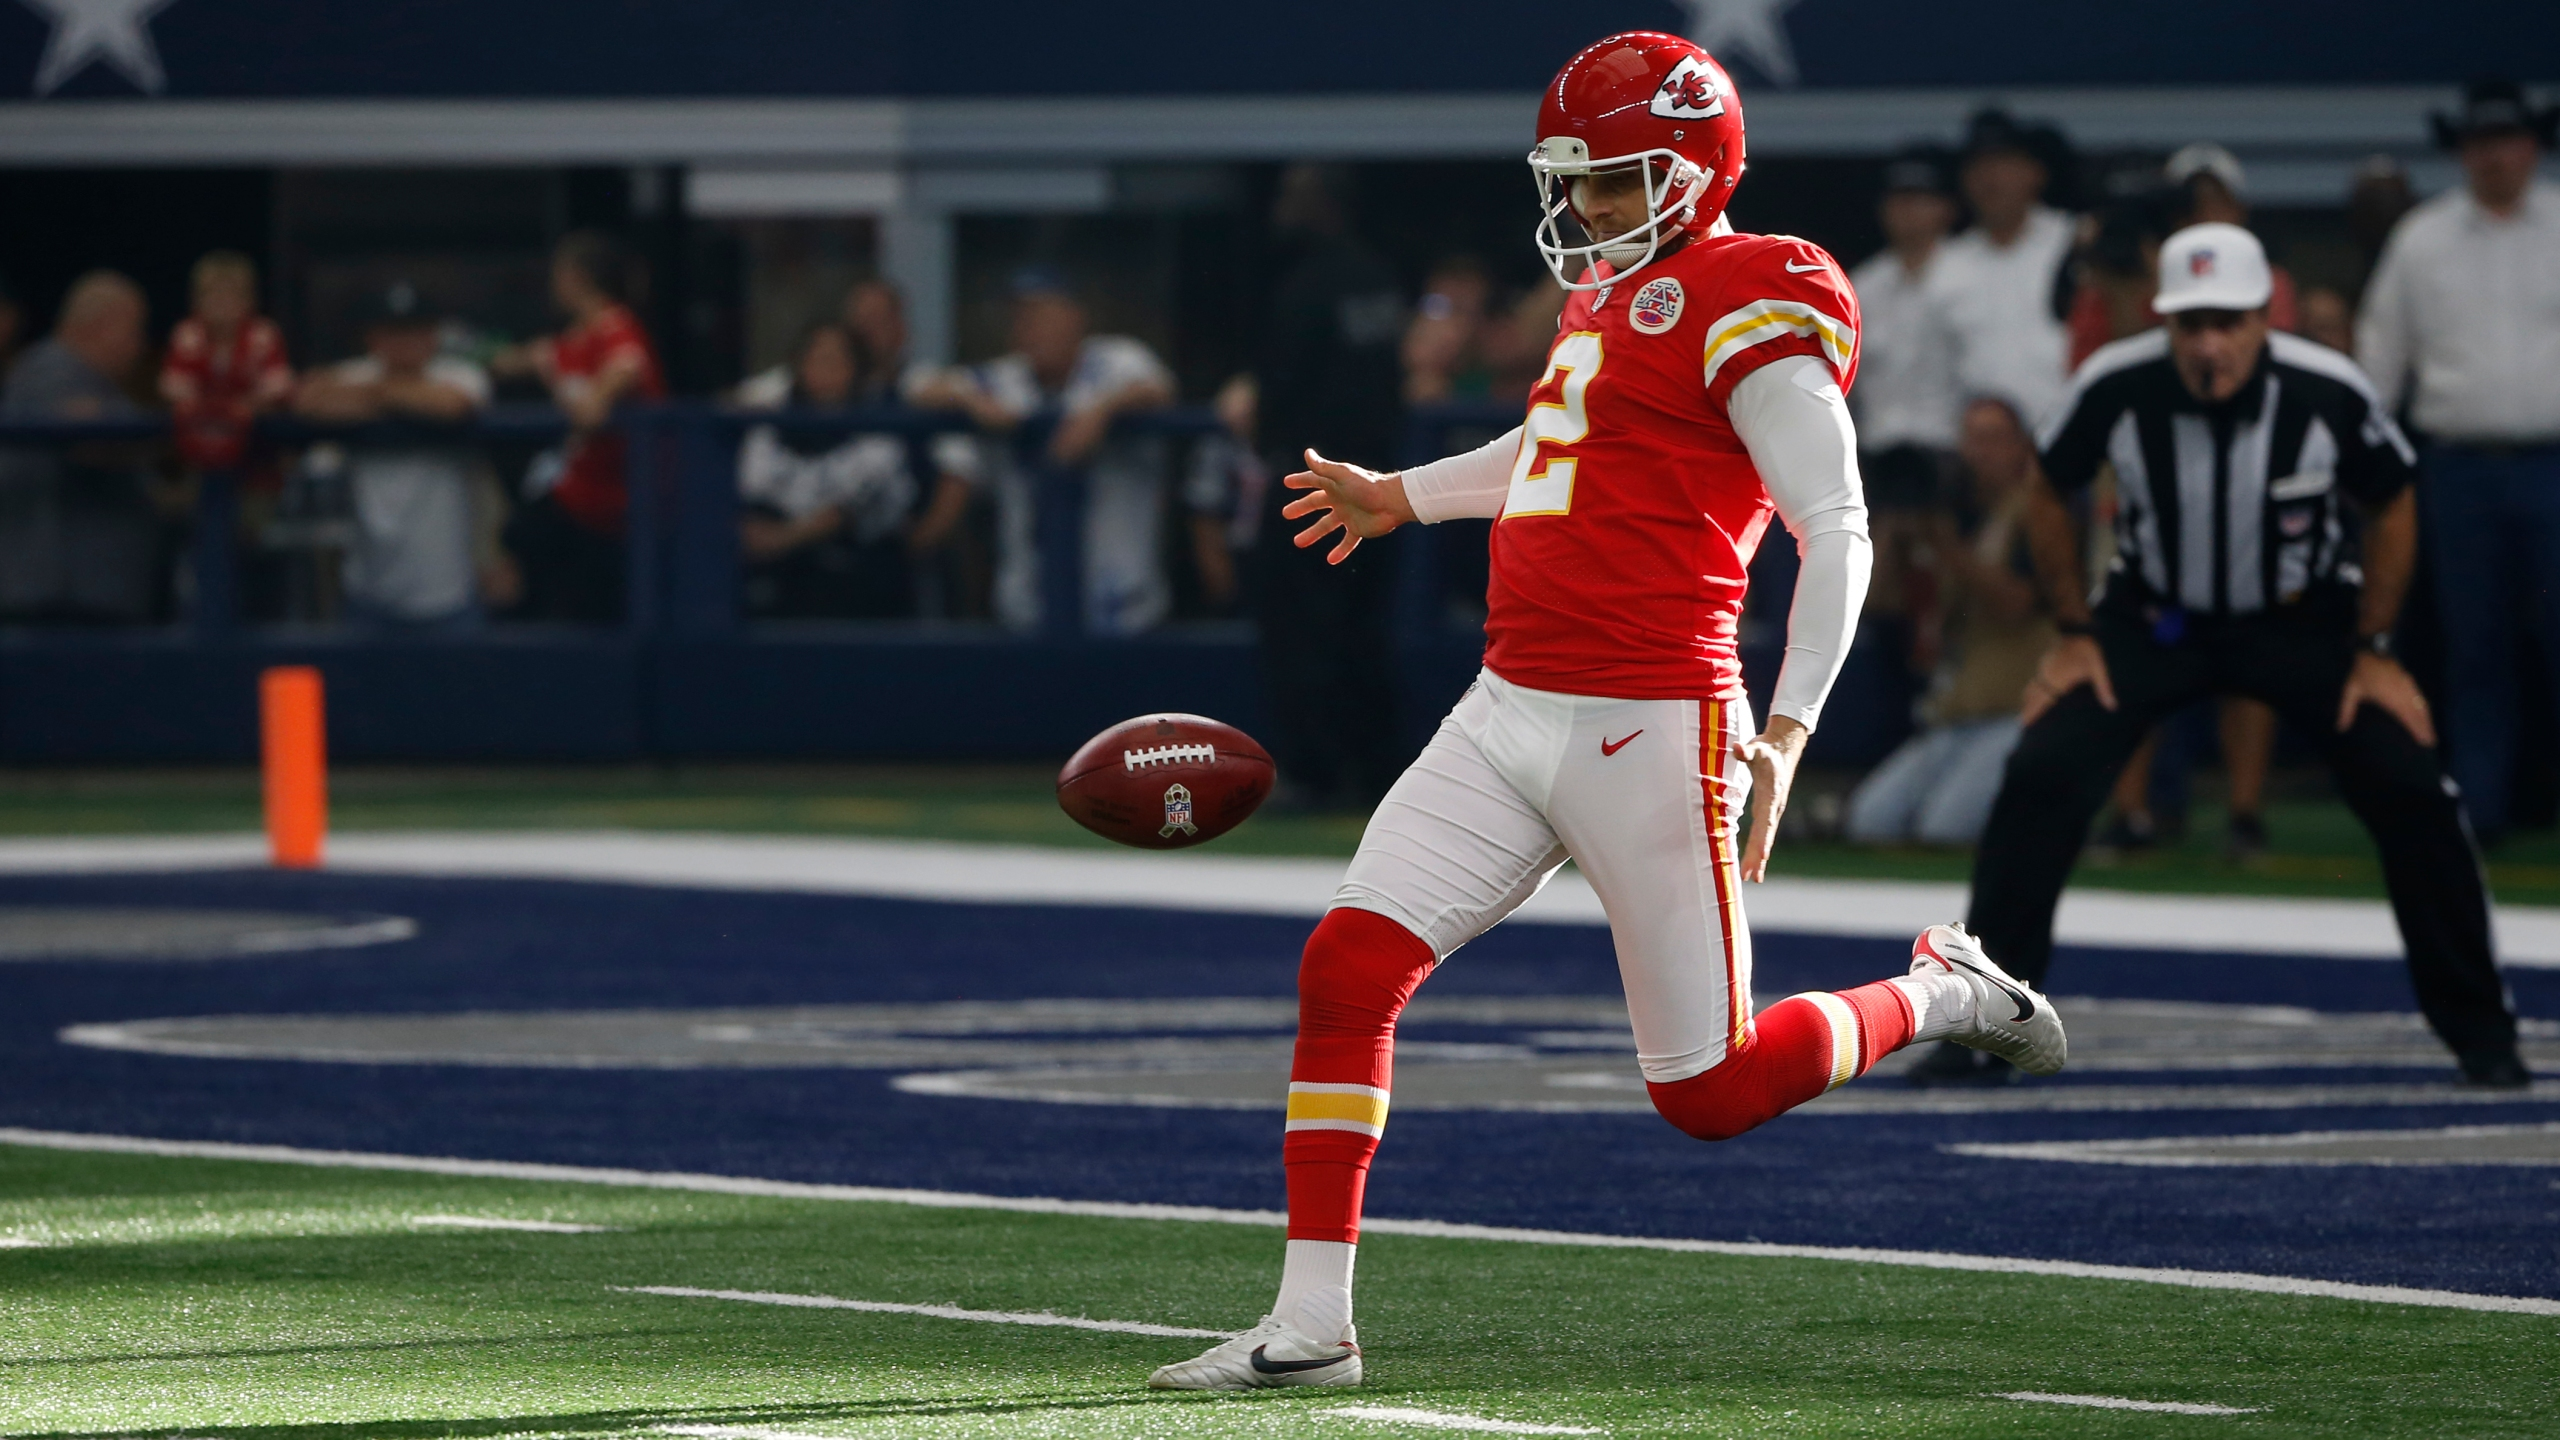 Picture of Colquitt punting